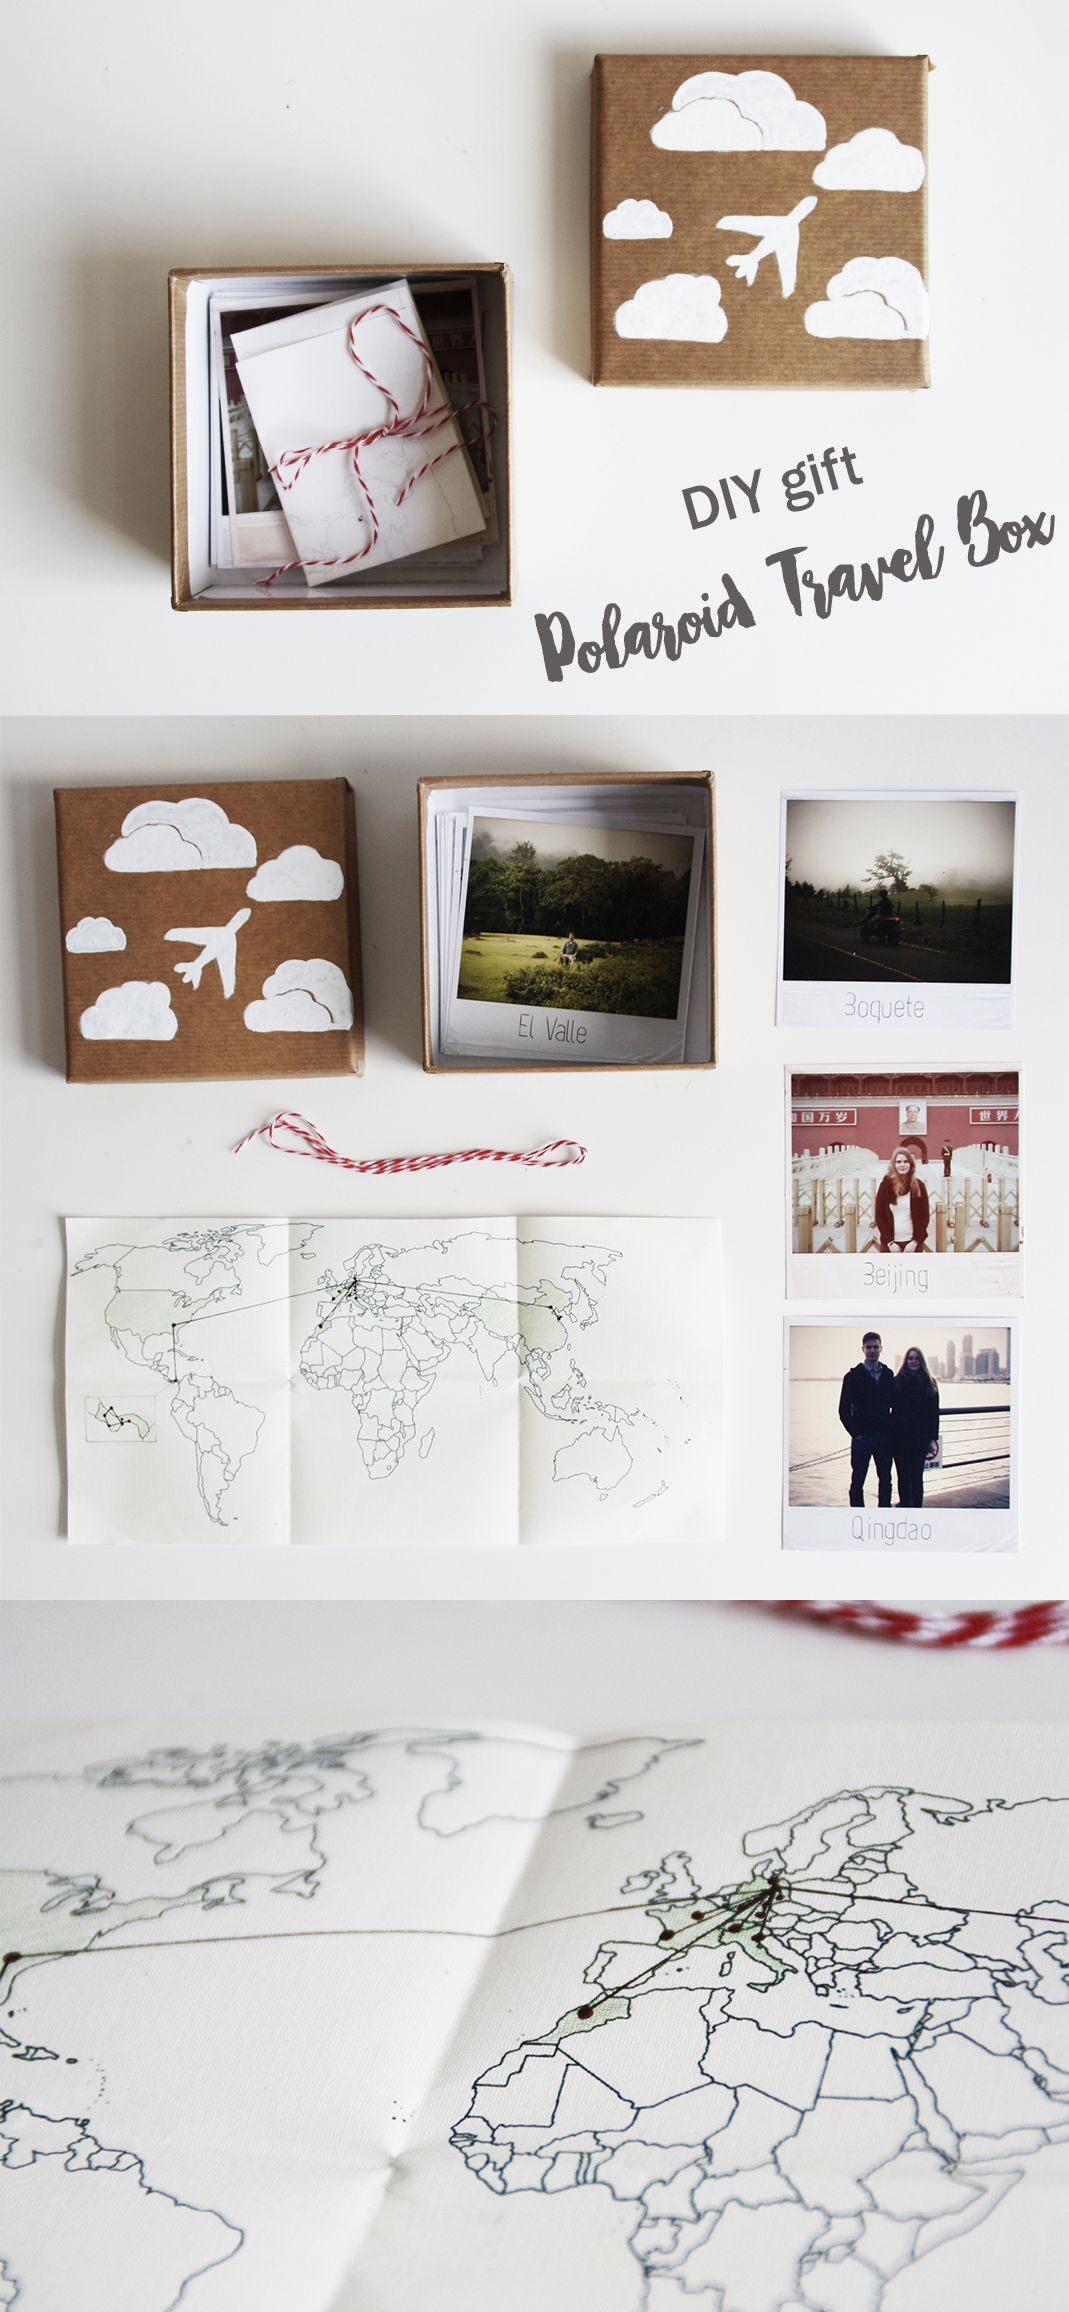 diy geschenk f r weltenbummler die polaroid reise kiste get crafty. Black Bedroom Furniture Sets. Home Design Ideas